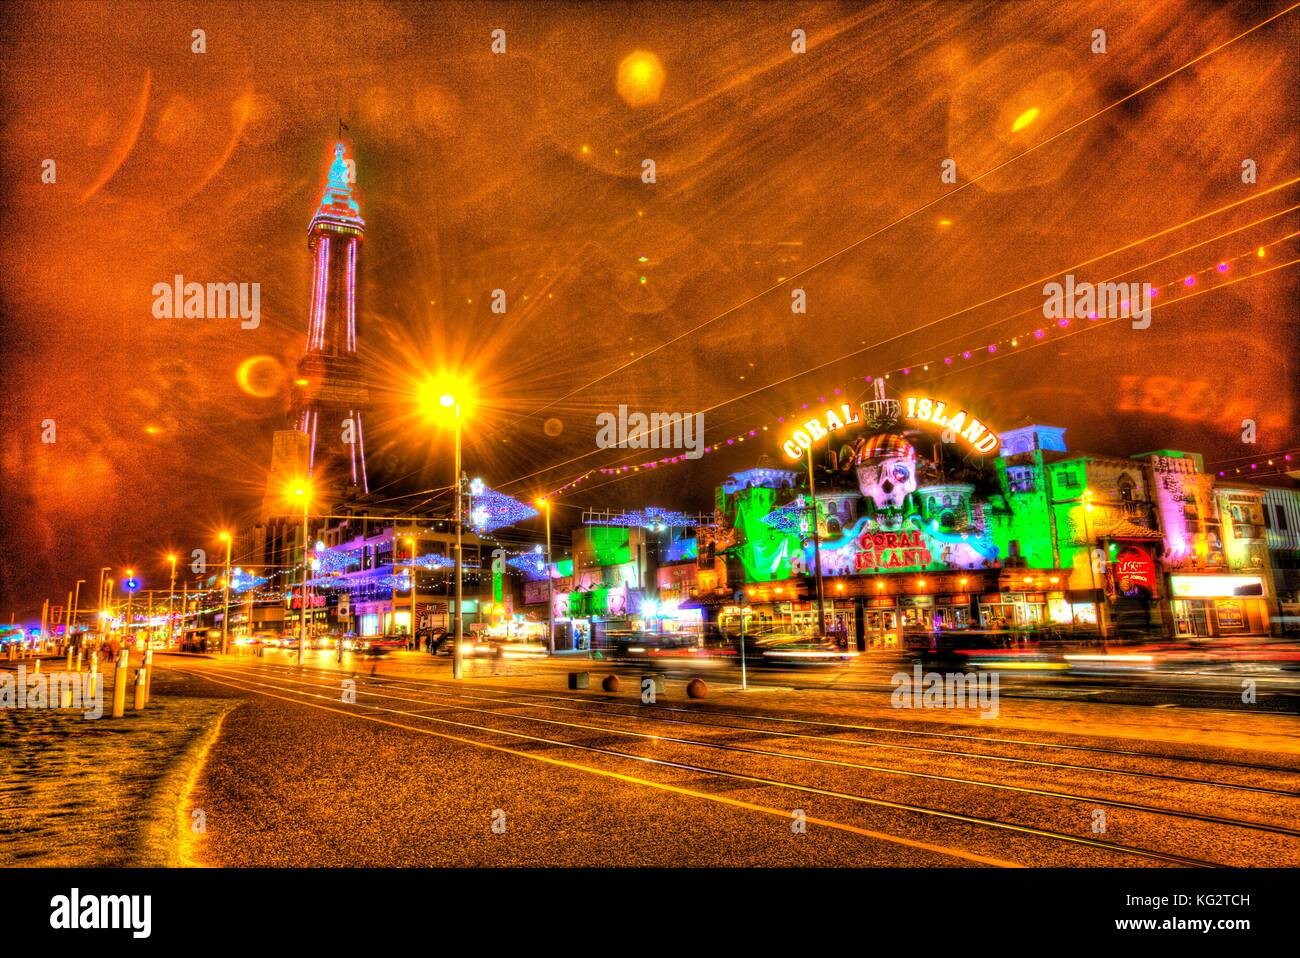 Town of Blackpool, England. Night view of Blackpool Illuminations and Blackpool Tower. This photograph has been Stock Photo